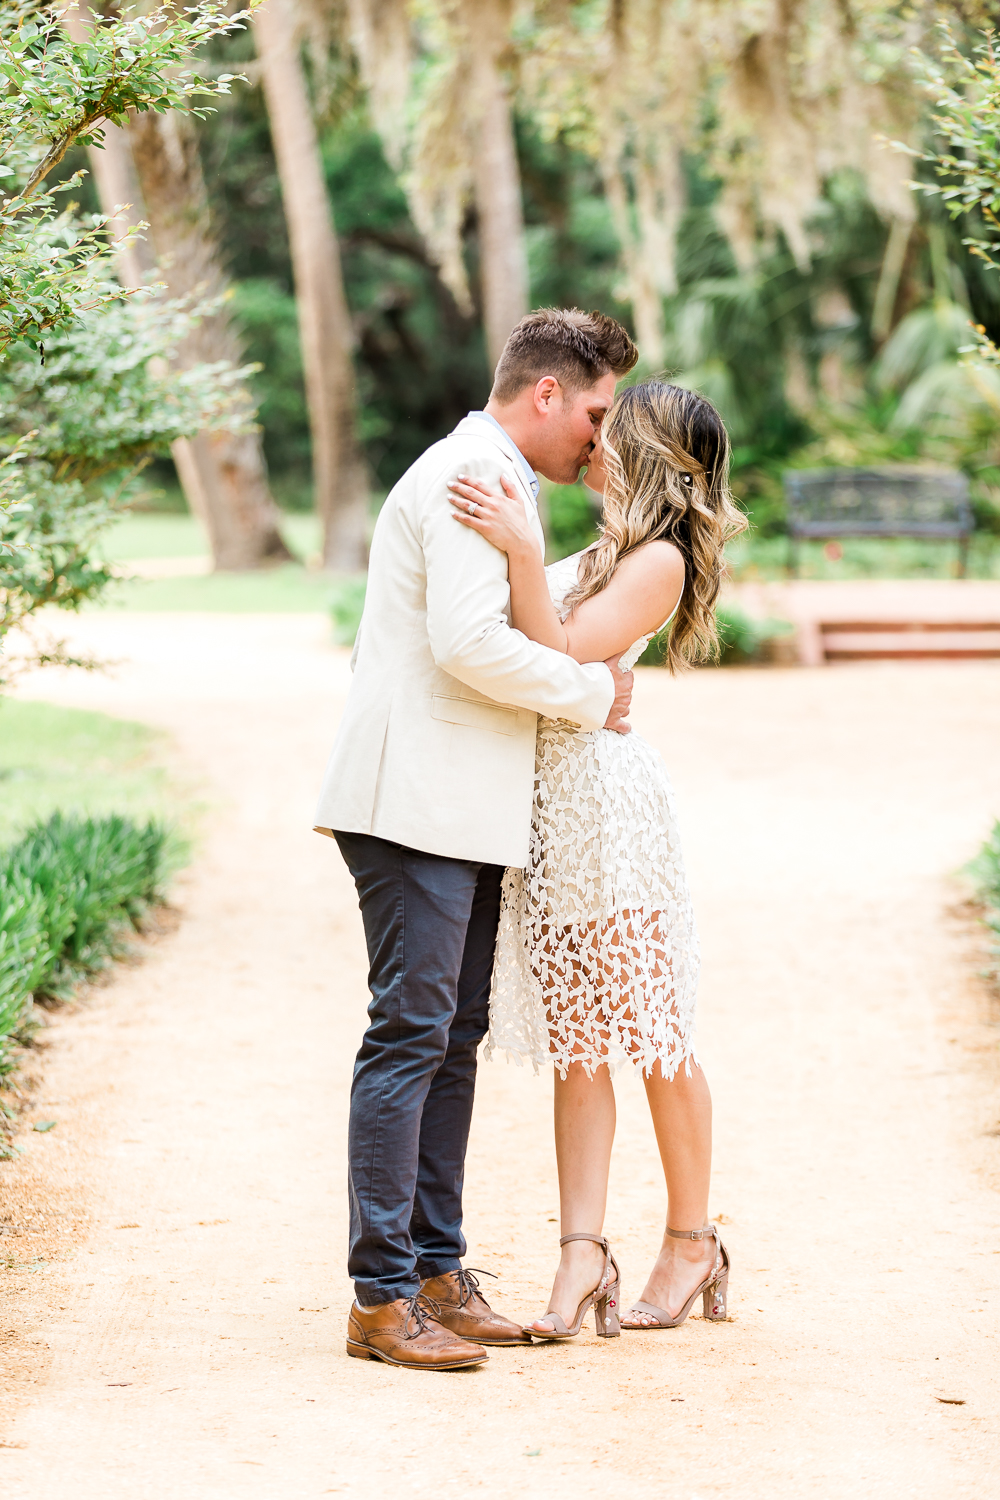 Styling guide and outfit ideas for an engagement session